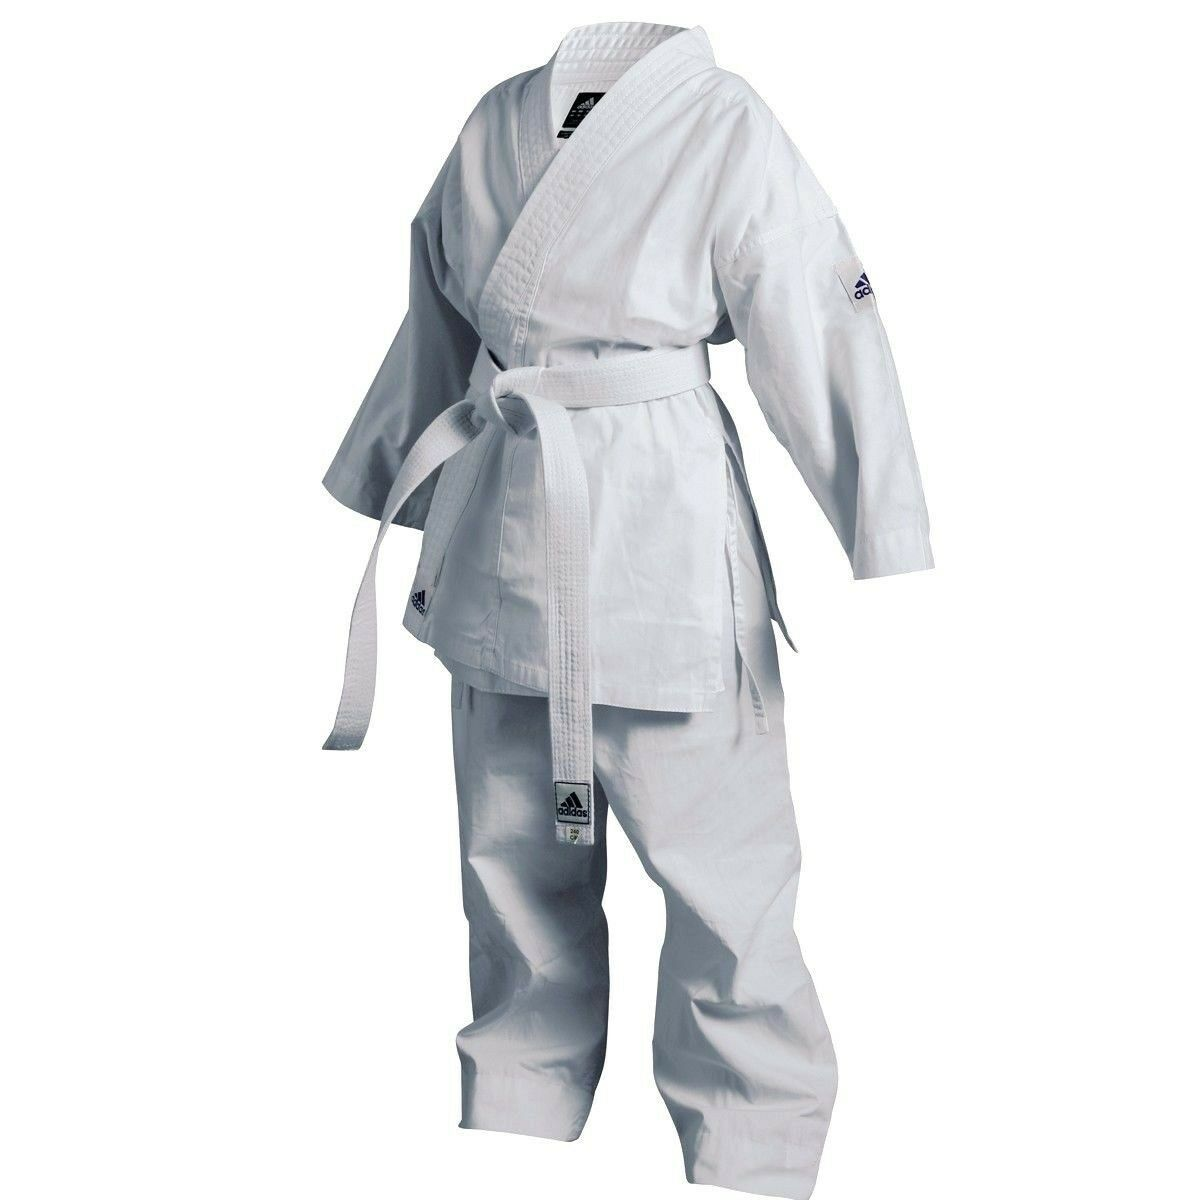 Adidas  Karate Training Uniform Student Gi with belt  100% authentic